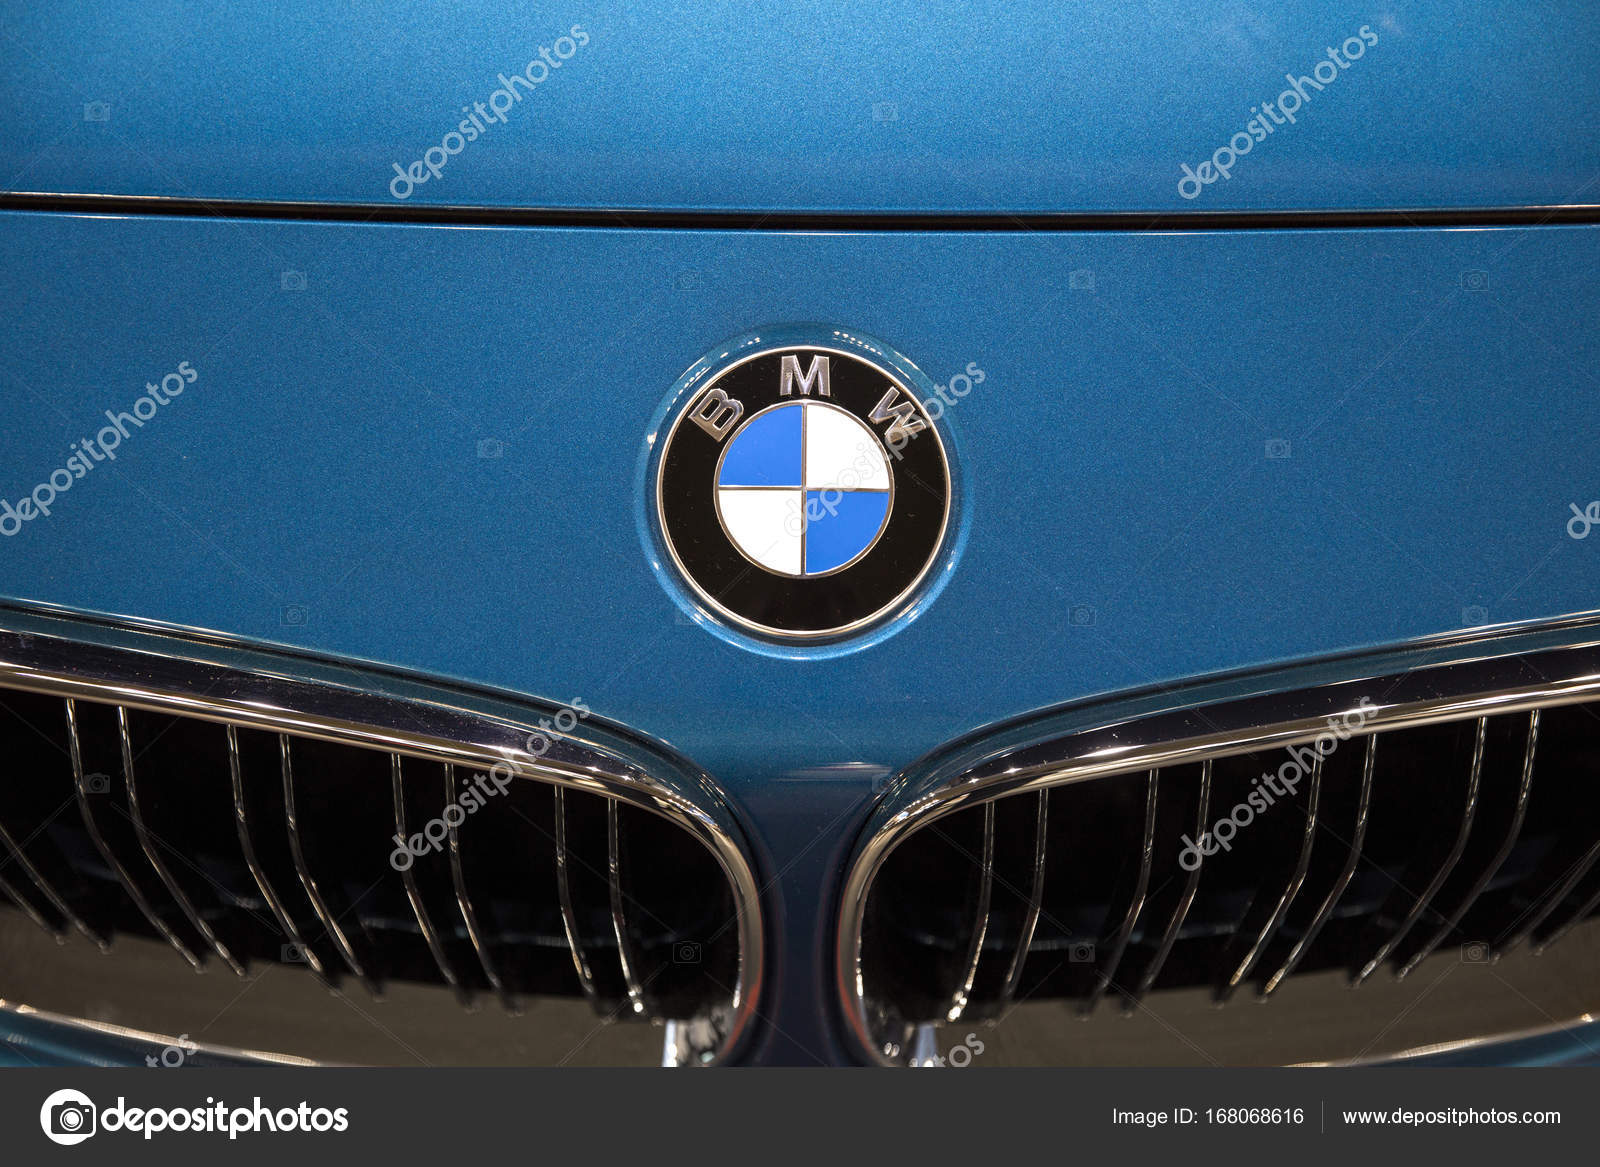 Bmw Car Sign Stock Editorial Photo C Boggy22 168068616